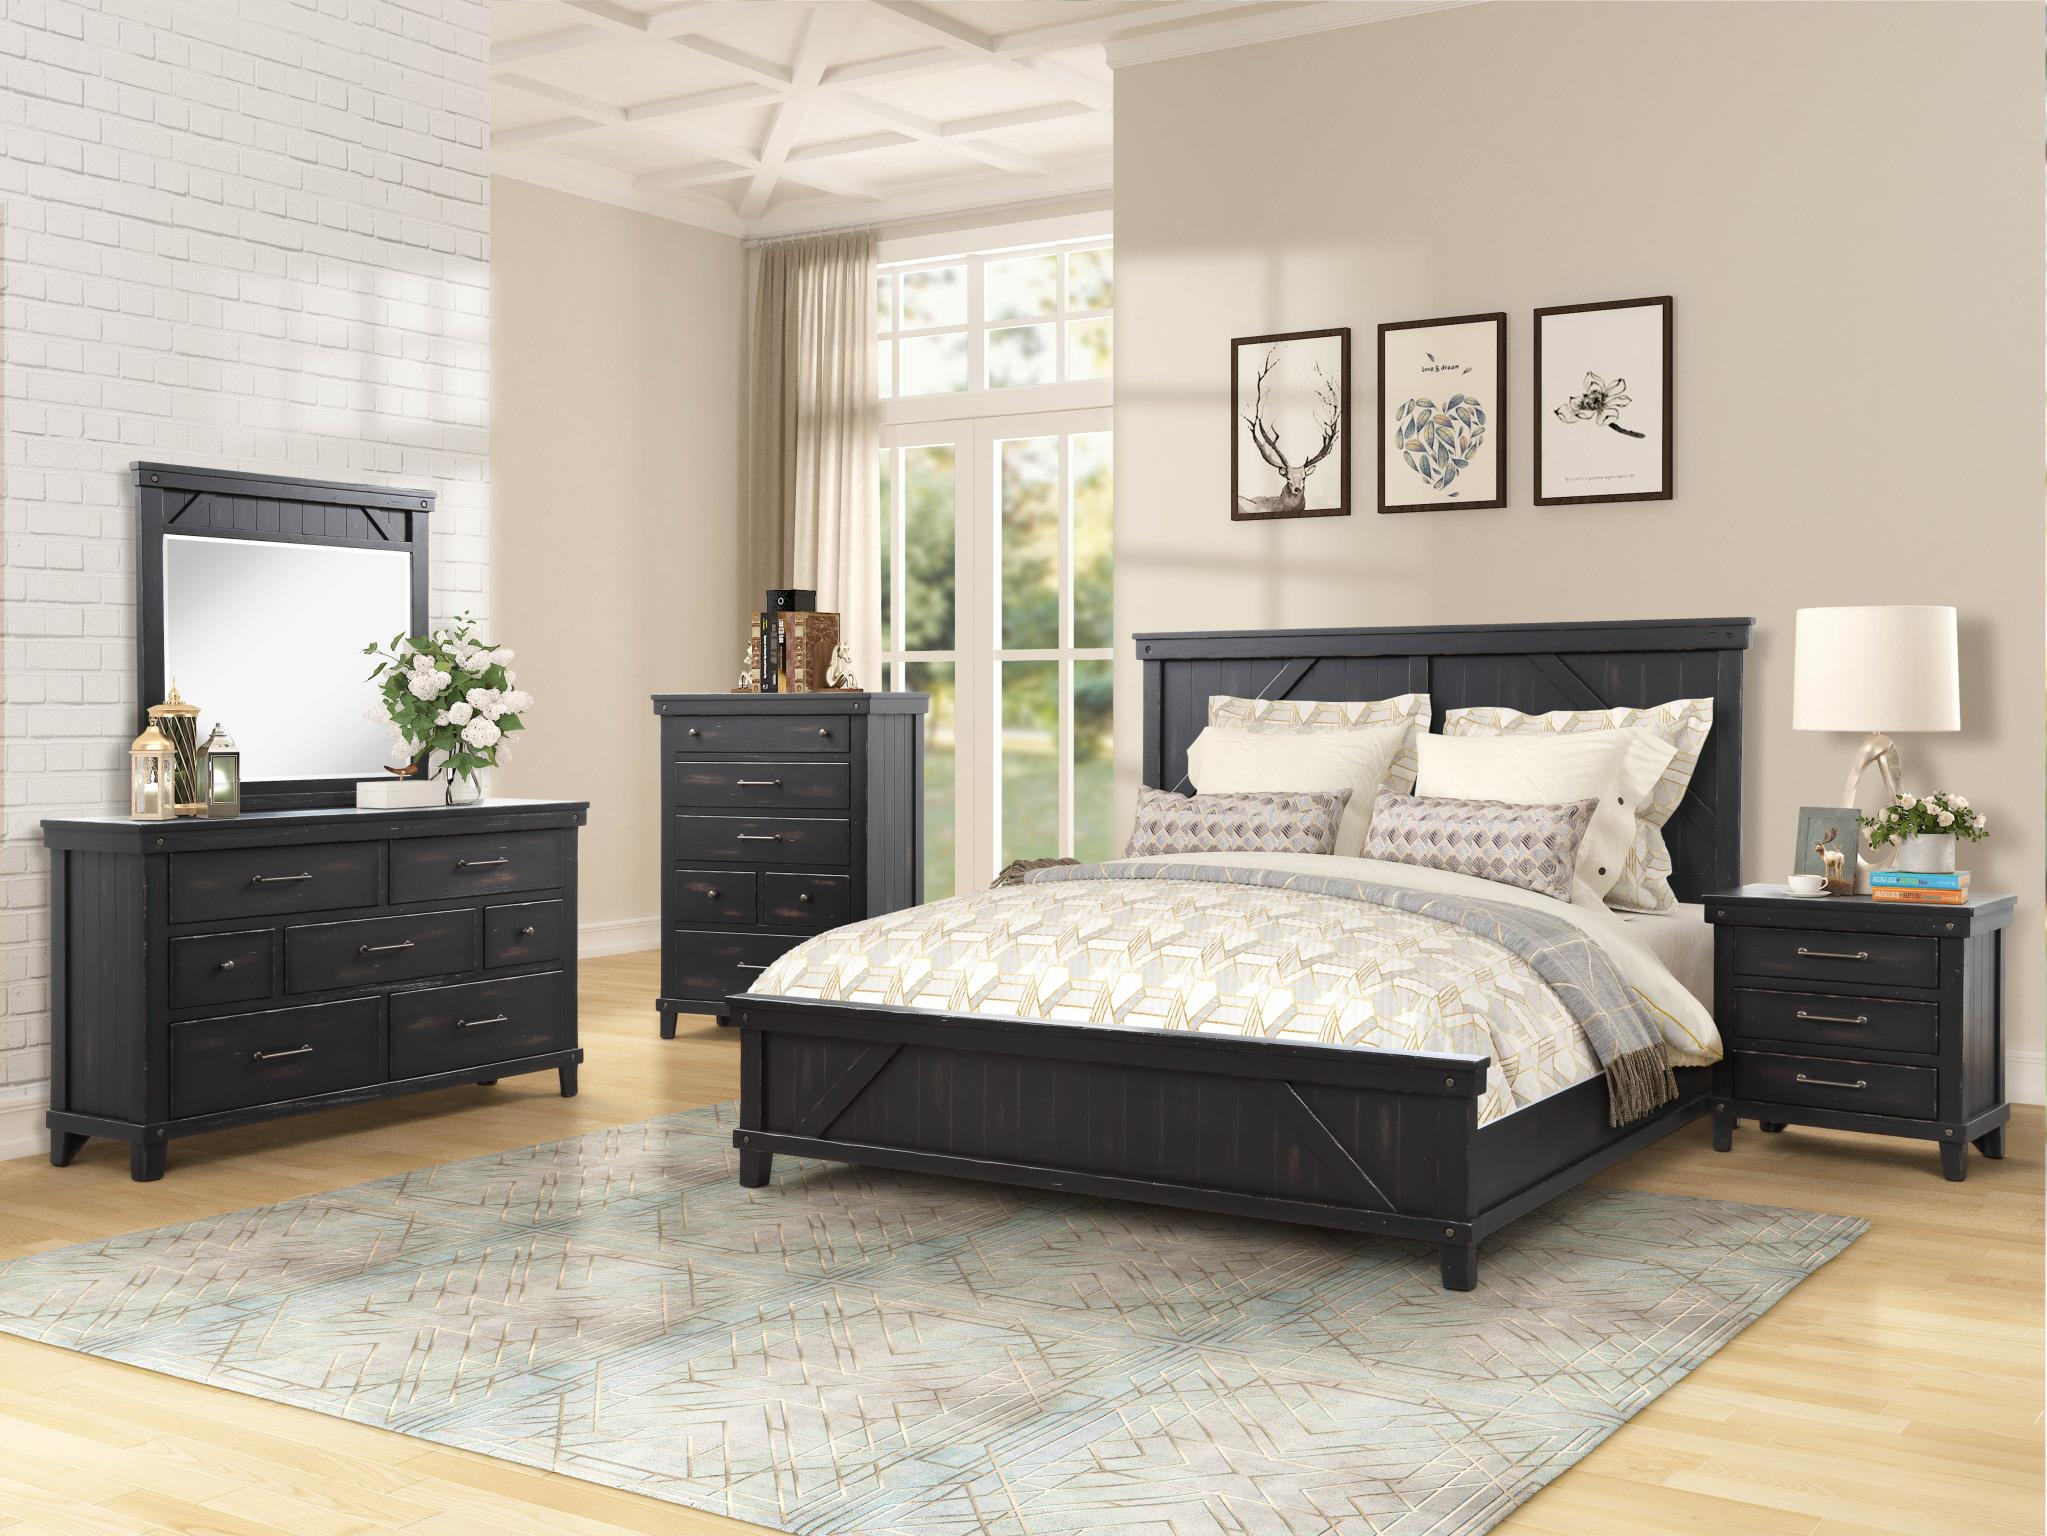 Spruce Creek Farmhouse Black Queen Bedroom Set